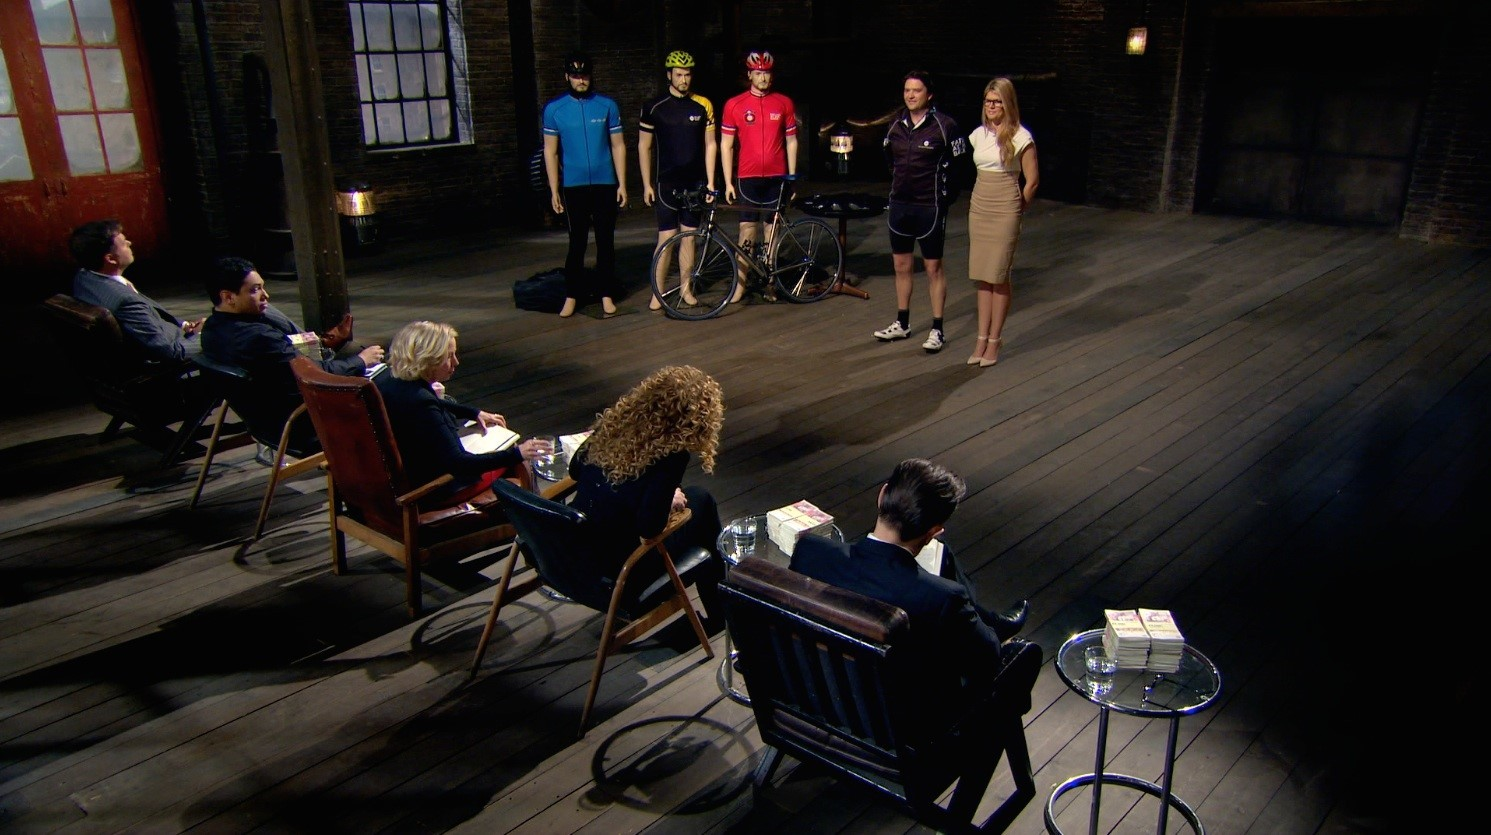 Fat Lad at the Back rides into Dragons' Den